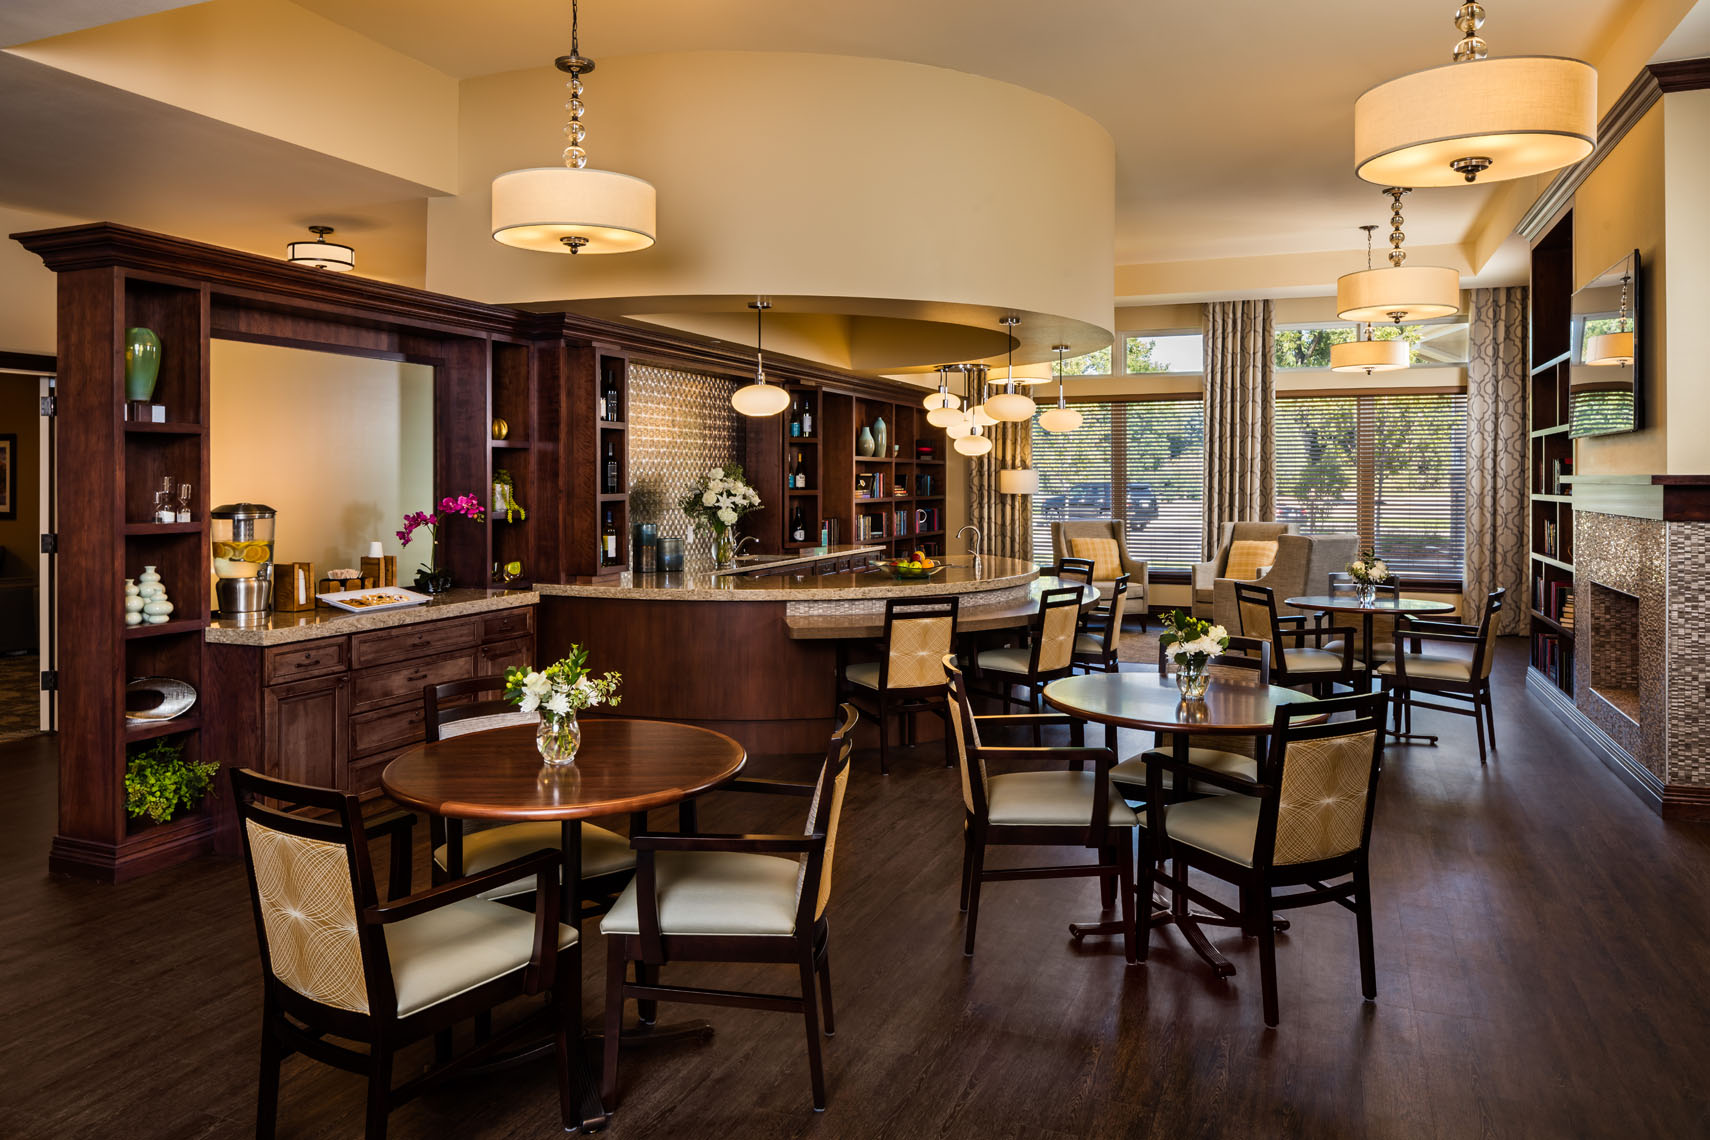 Bar area of a restaurant in a senior living facility photographed for the architect and interior designer in denver colorado